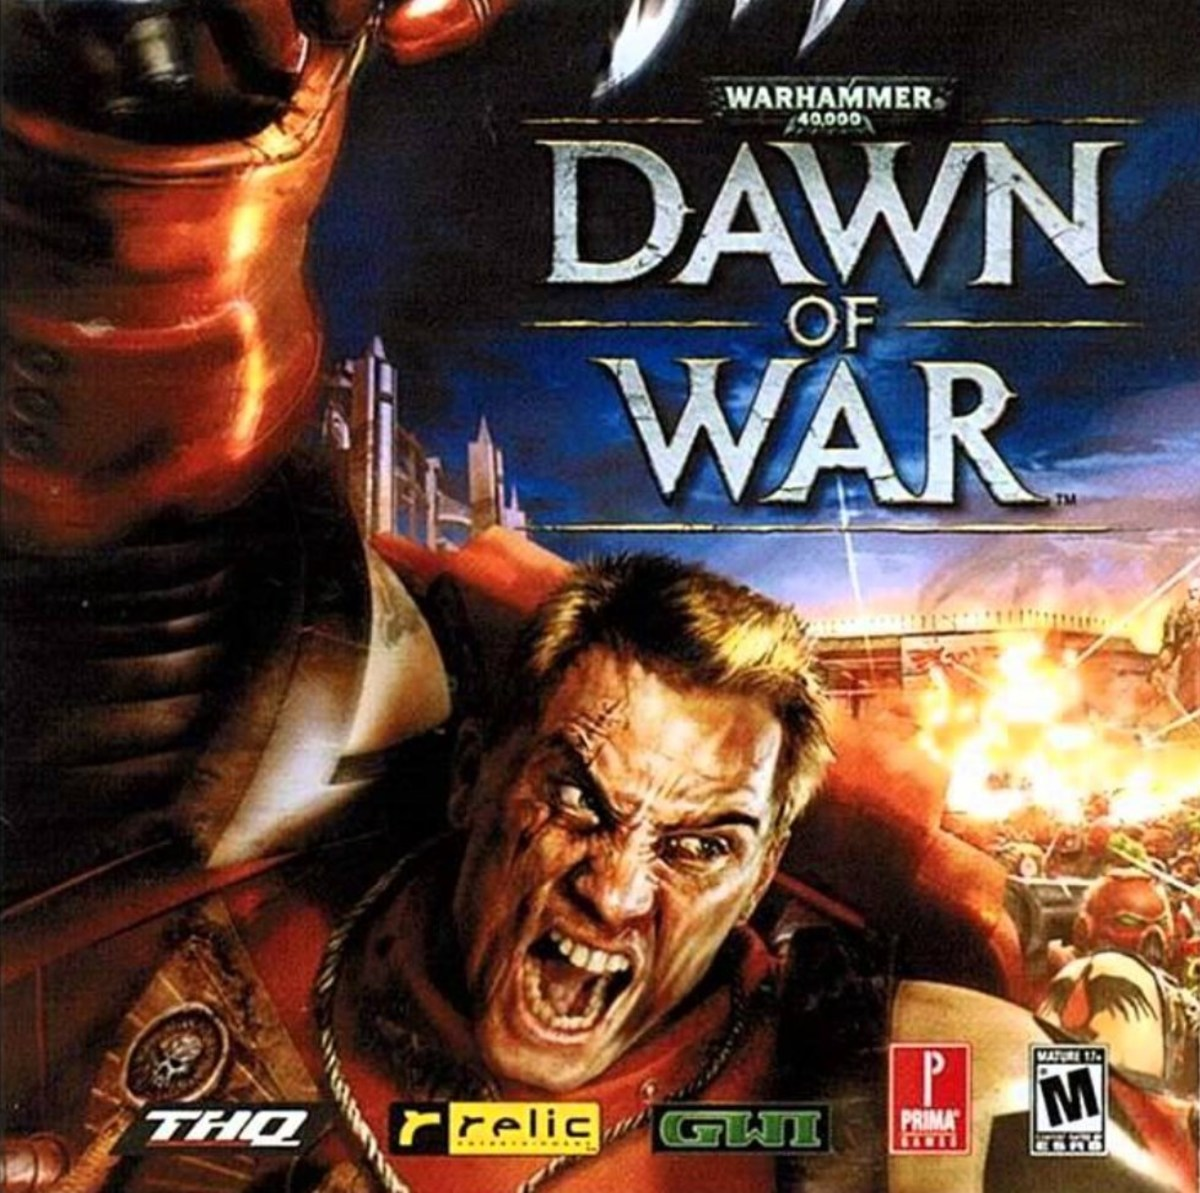 Warhammer 40k: Dawn of War